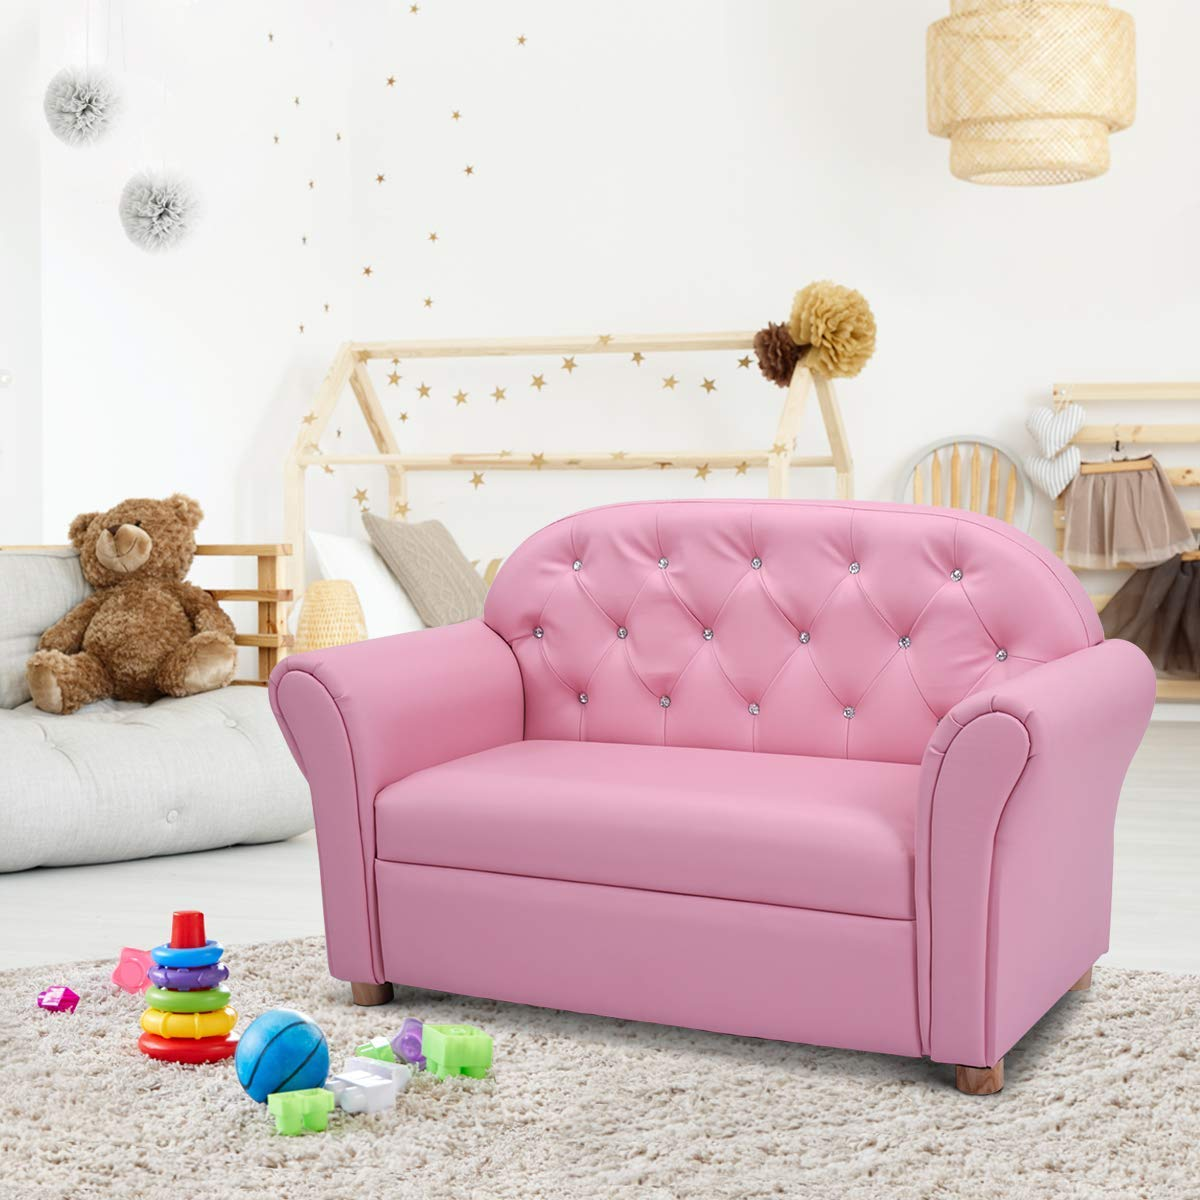 Costzon Kids Sofa, ASTM and CPSIA Certified, PU Leather Upholstered Couch, Sturdy Wood Construction, Armrest Chair